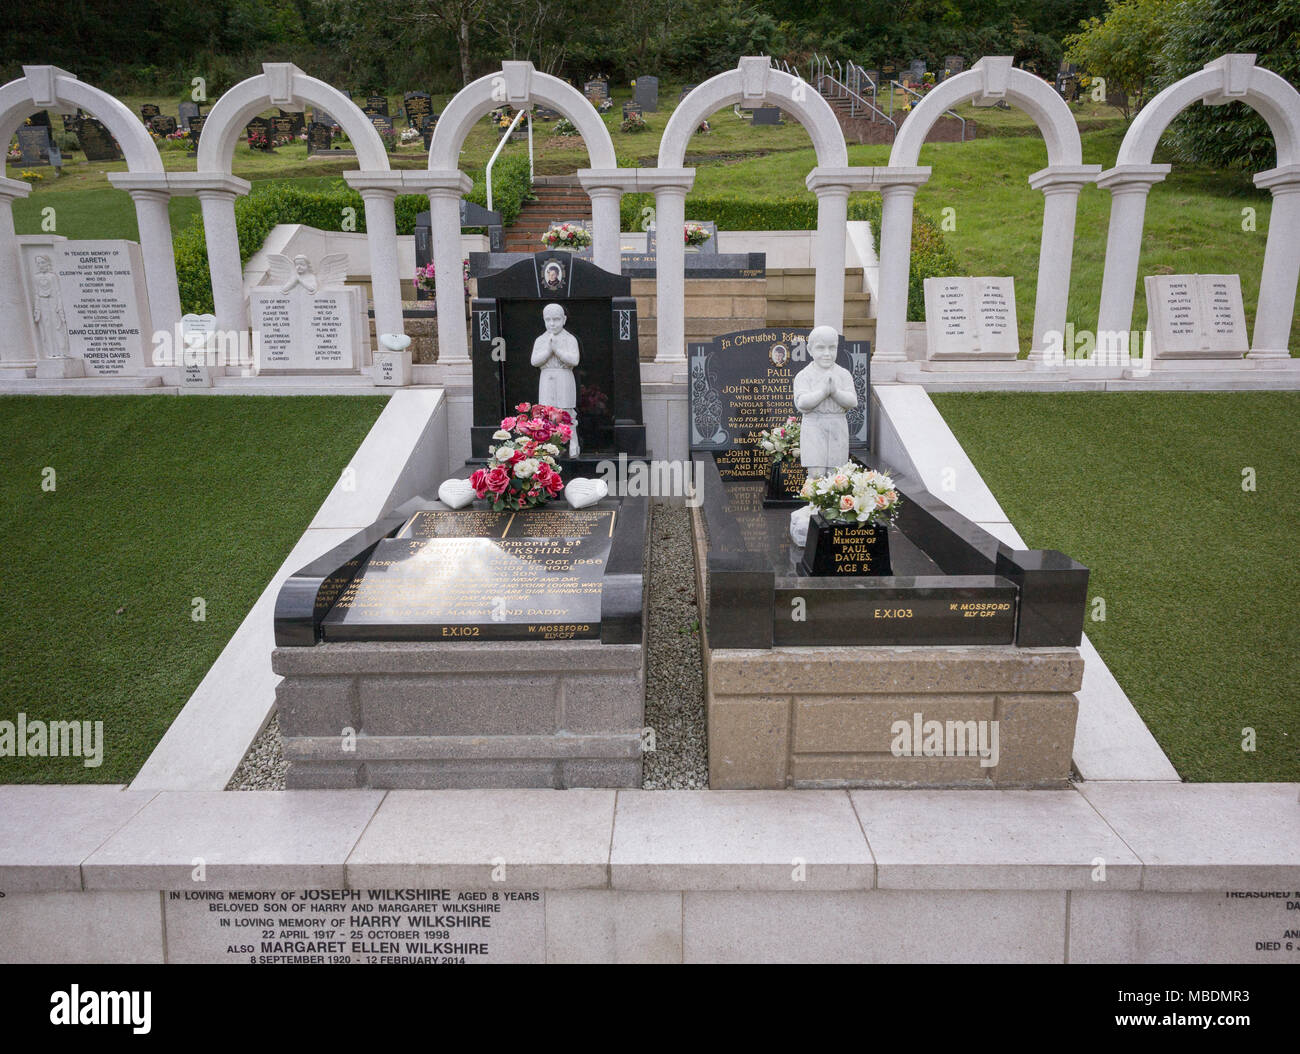 Memorials and grave markers in Aberfan Cemetery to children